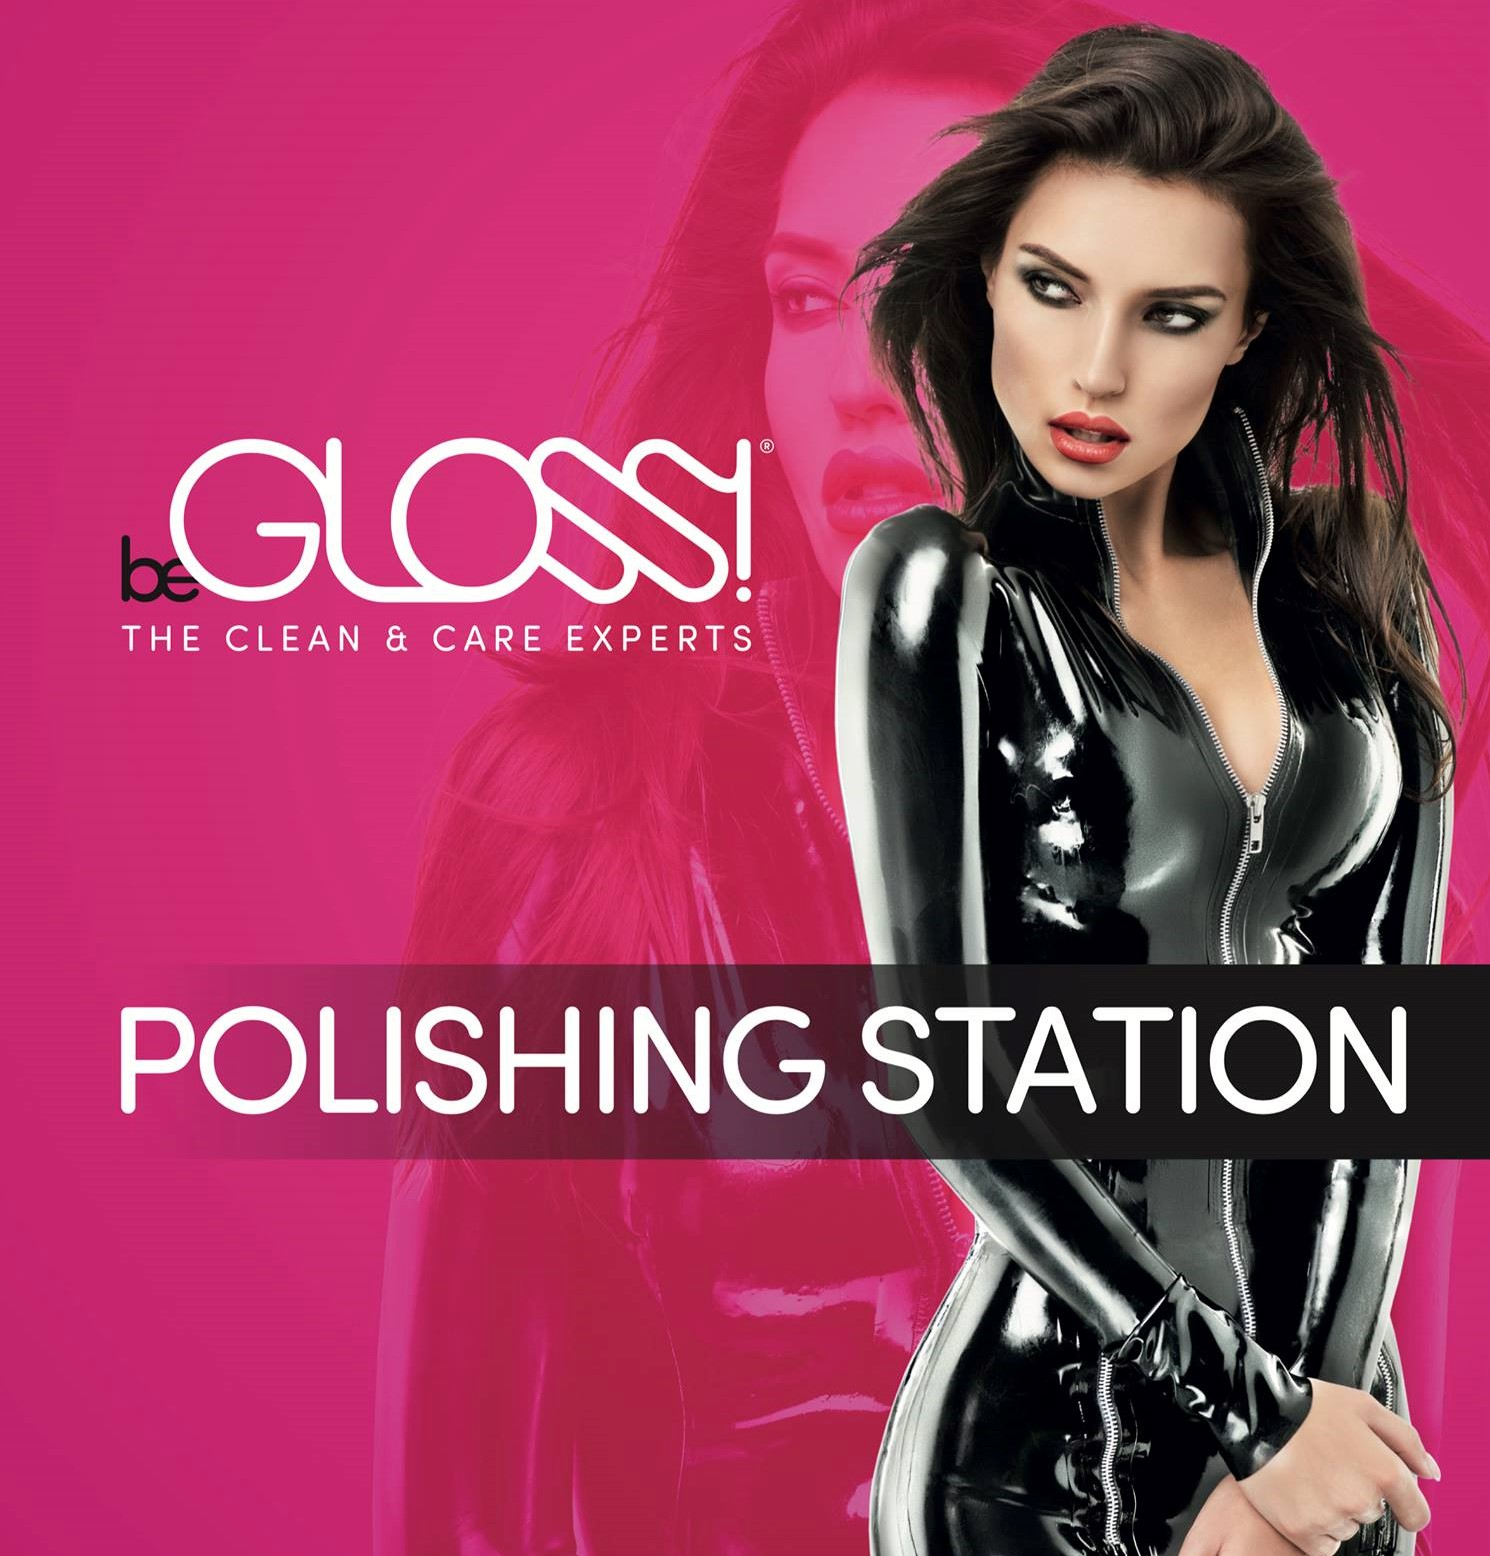 be gloss booth